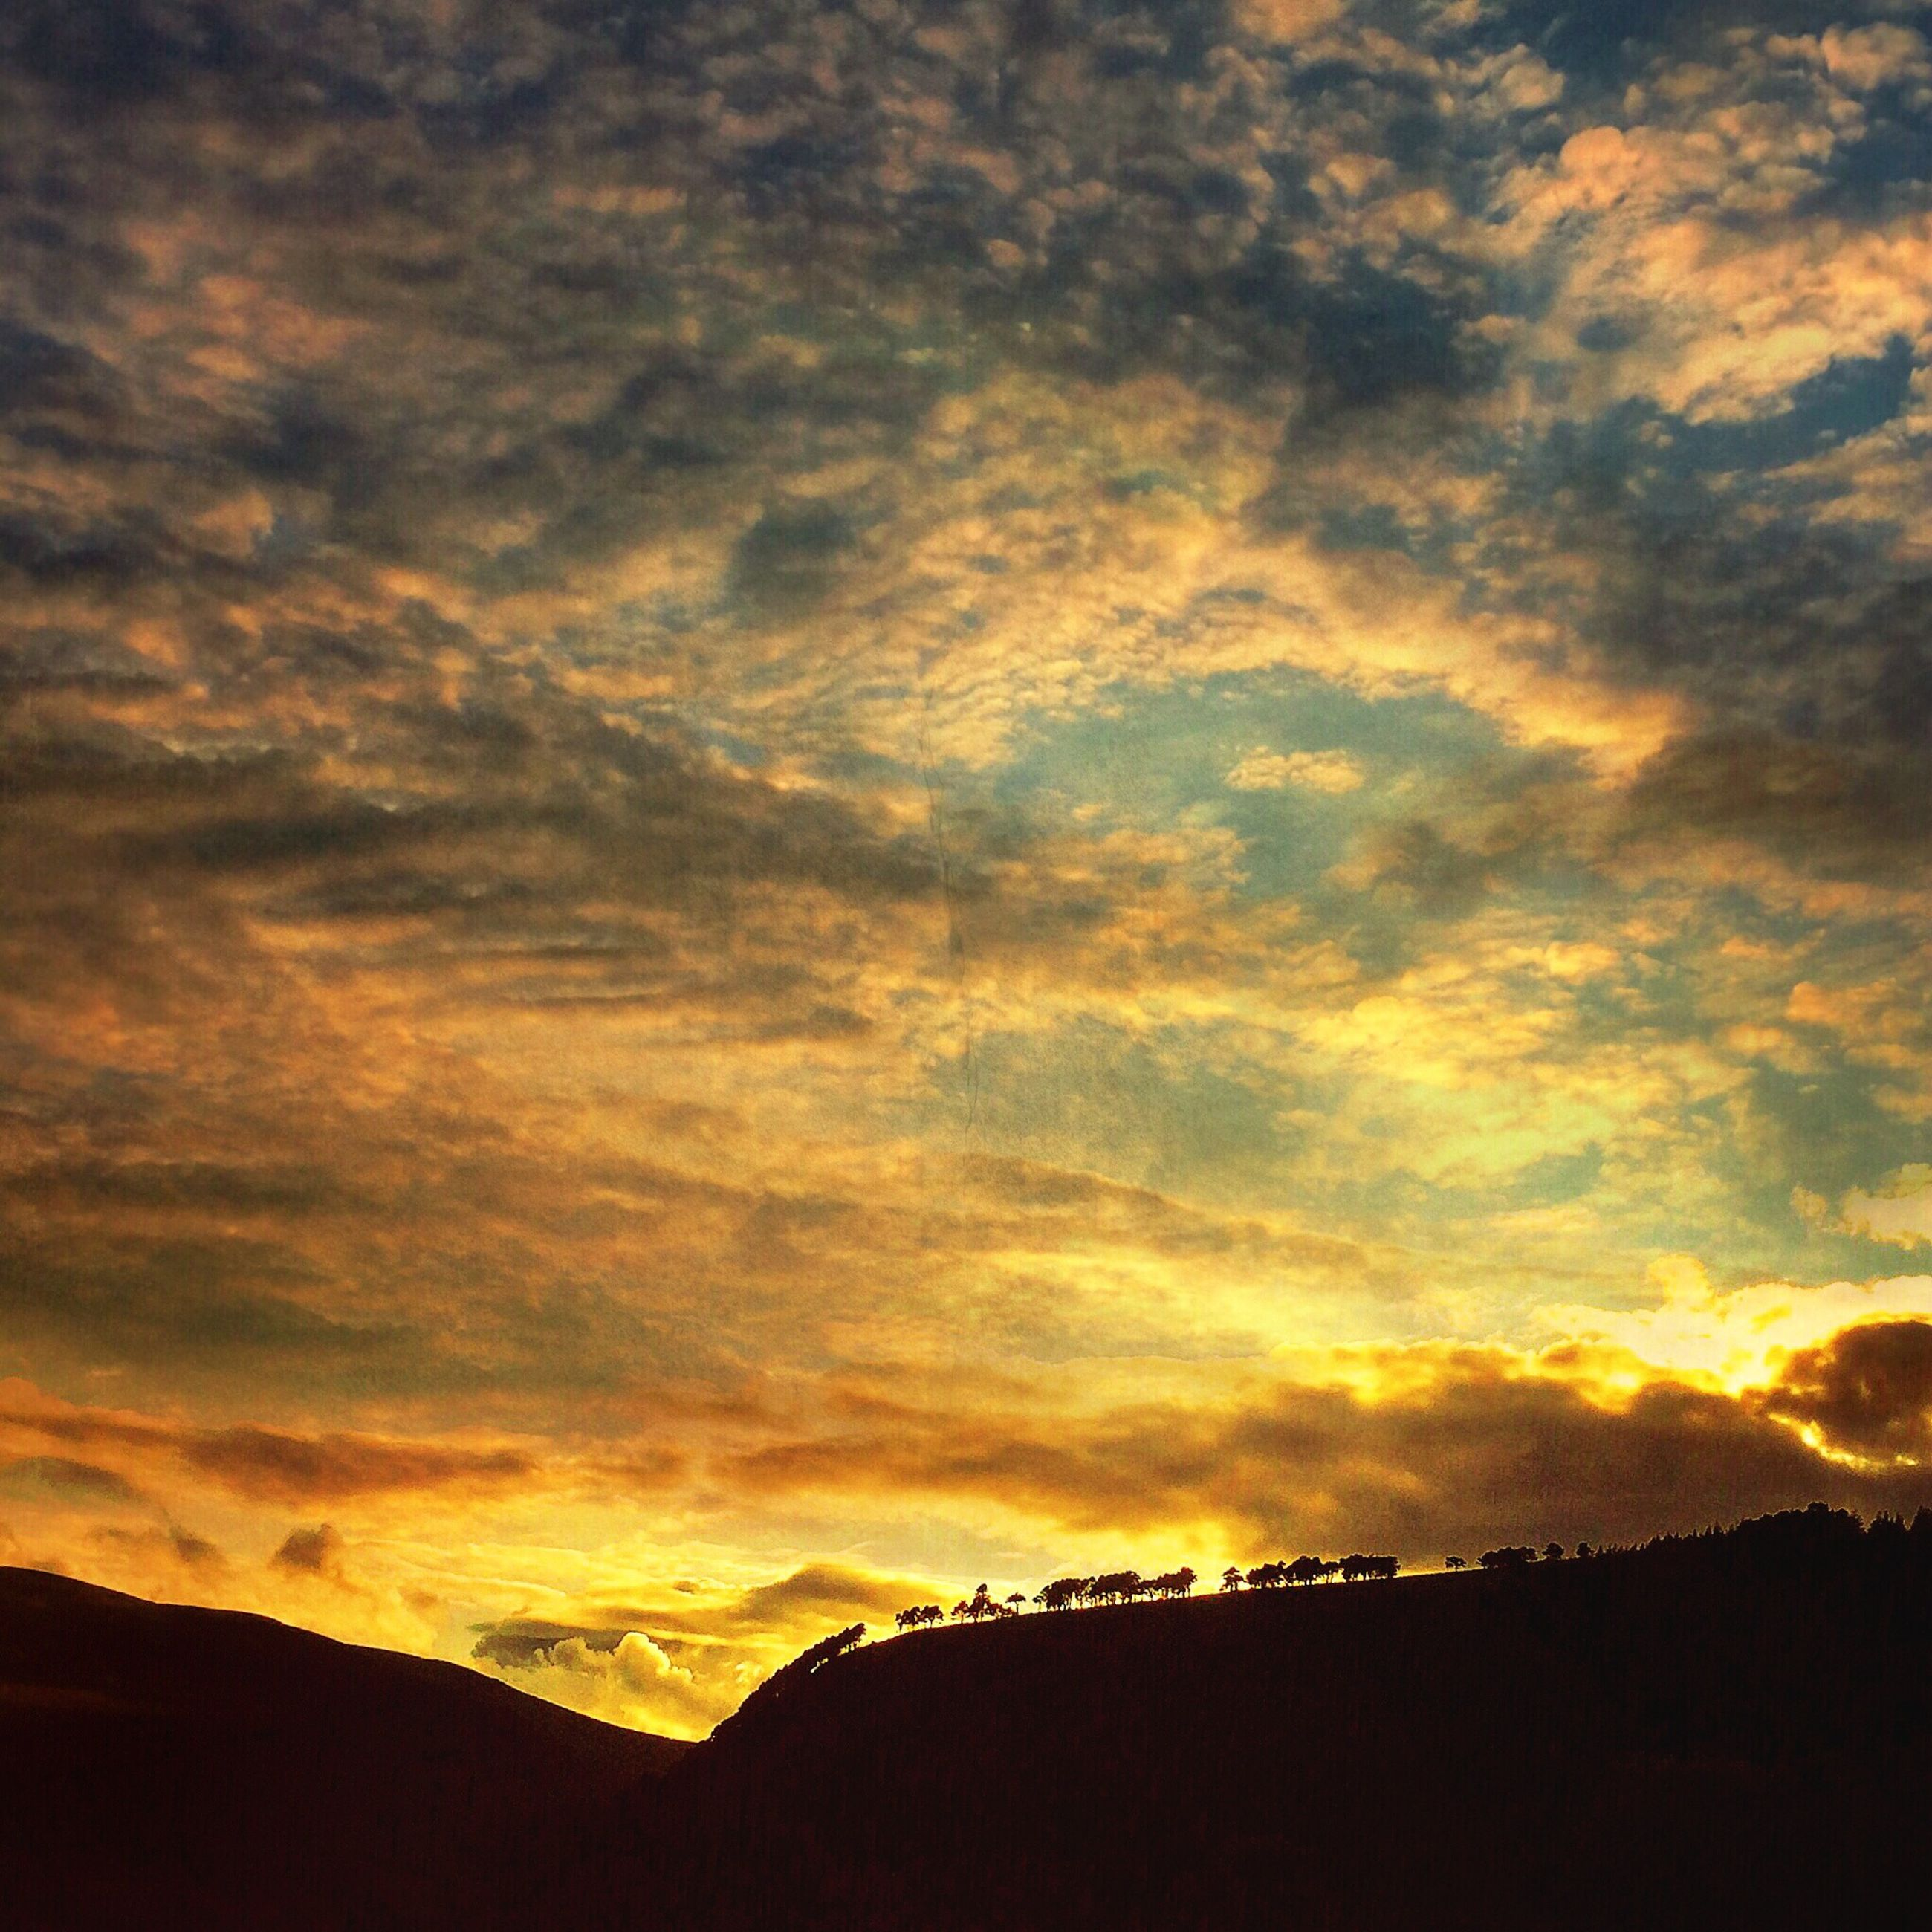 sunset, sky, cloud - sky, silhouette, low angle view, cloudy, orange color, scenics, beauty in nature, built structure, architecture, dramatic sky, cloud, tranquility, tranquil scene, nature, building exterior, idyllic, weather, outdoors